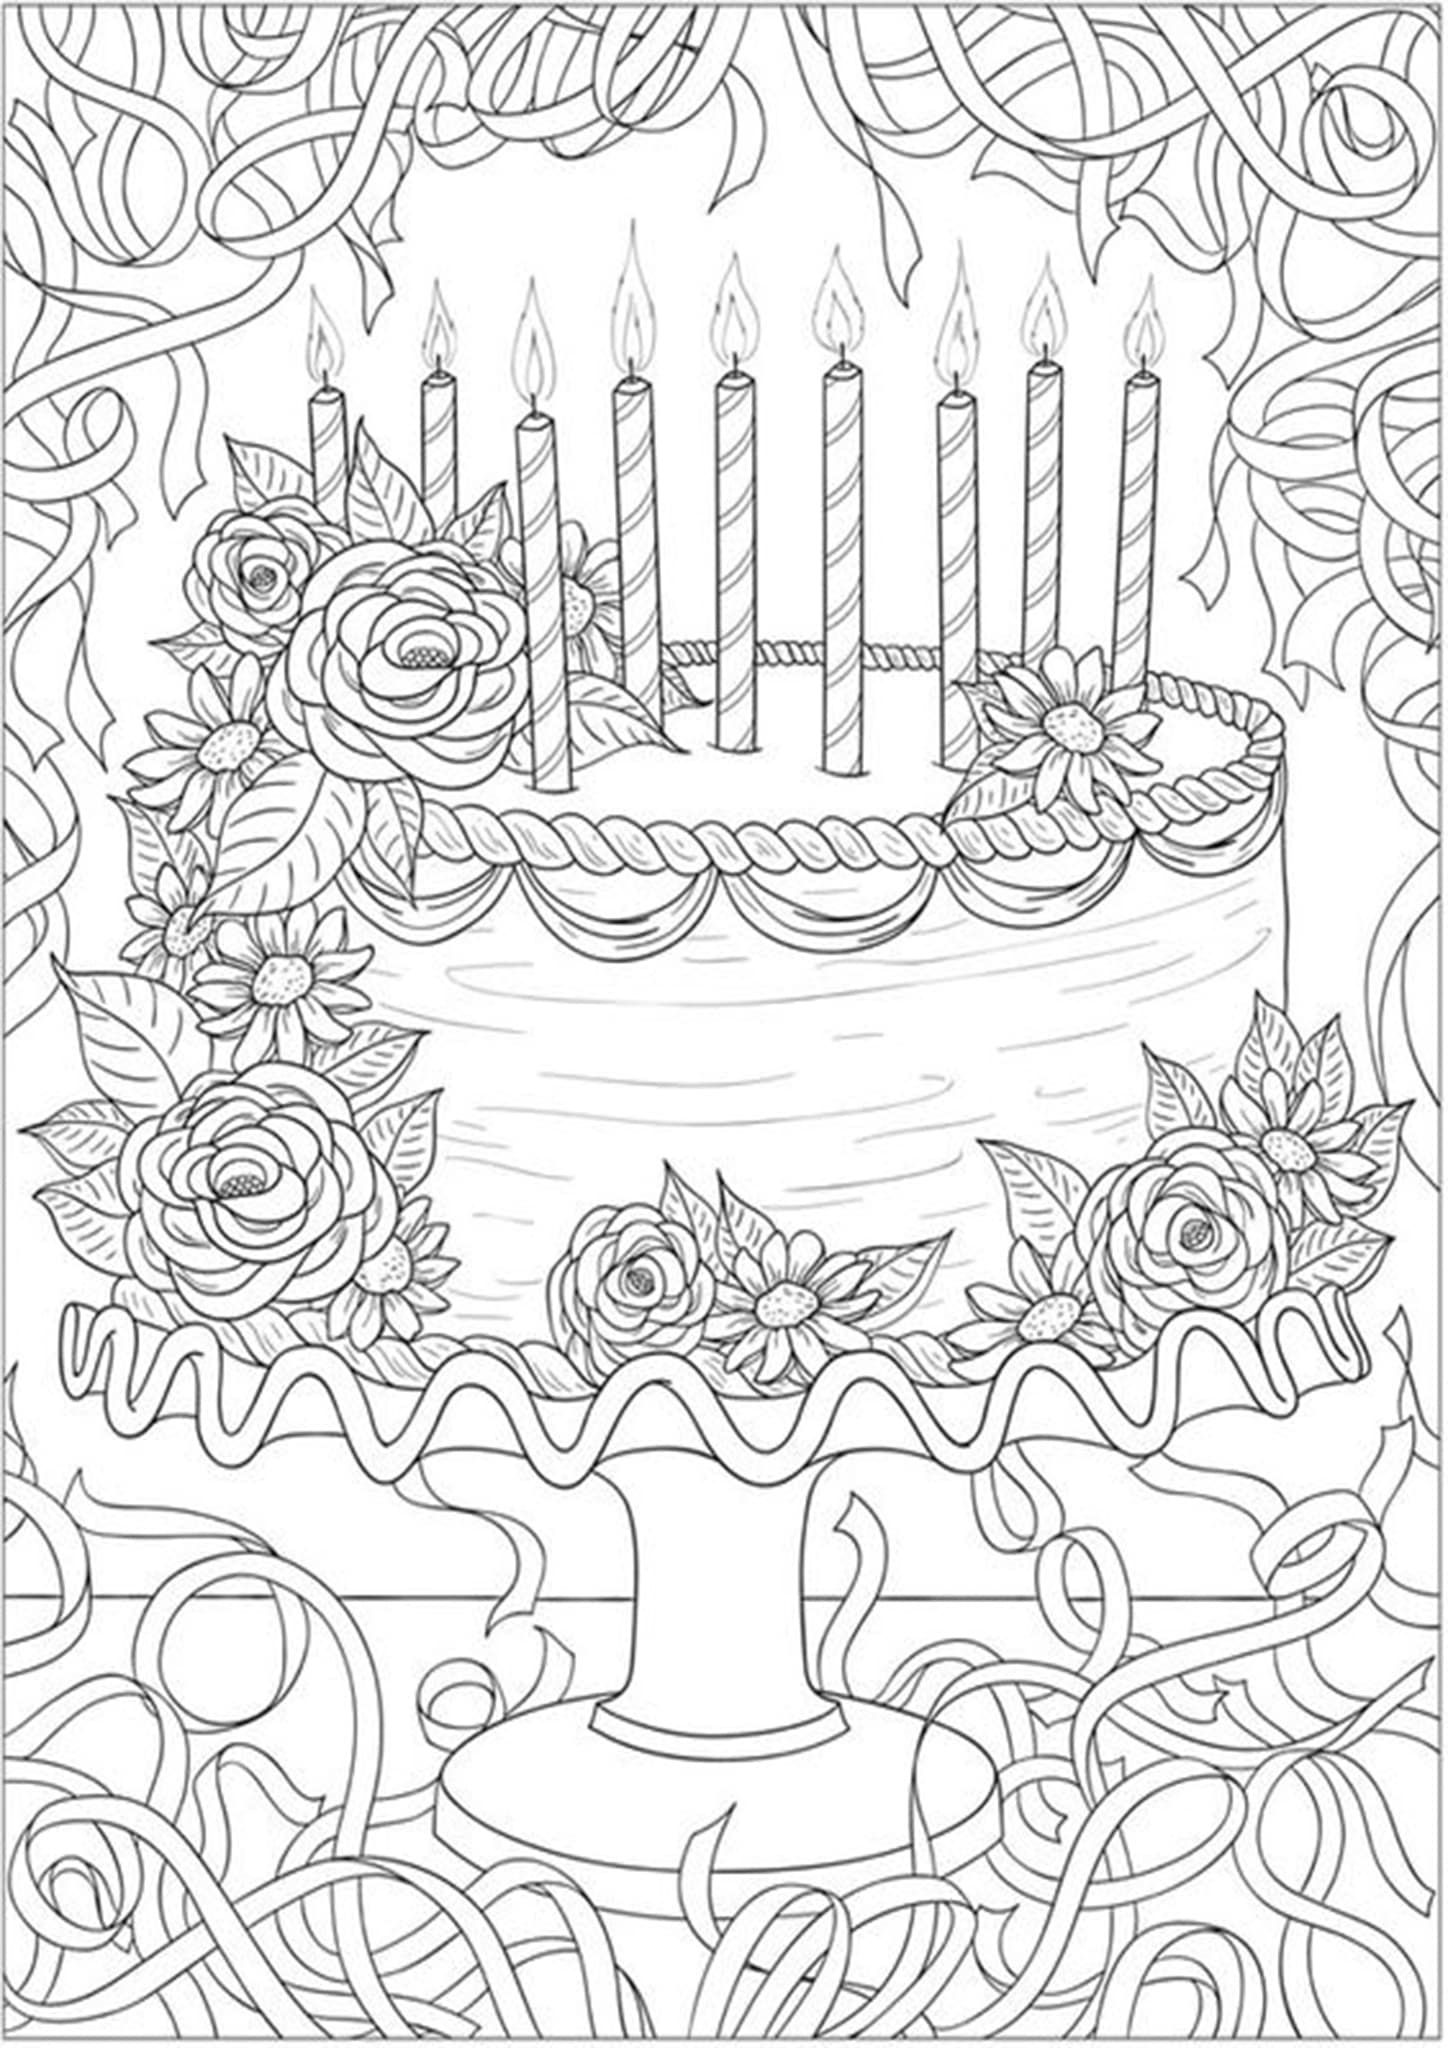 9 Happy Birthday Coloring Pages Getcoloringpages Org Coloring Coloringbook Happy Birthday Coloring Pages Birthday Coloring Pages Happy Birthday Drawings